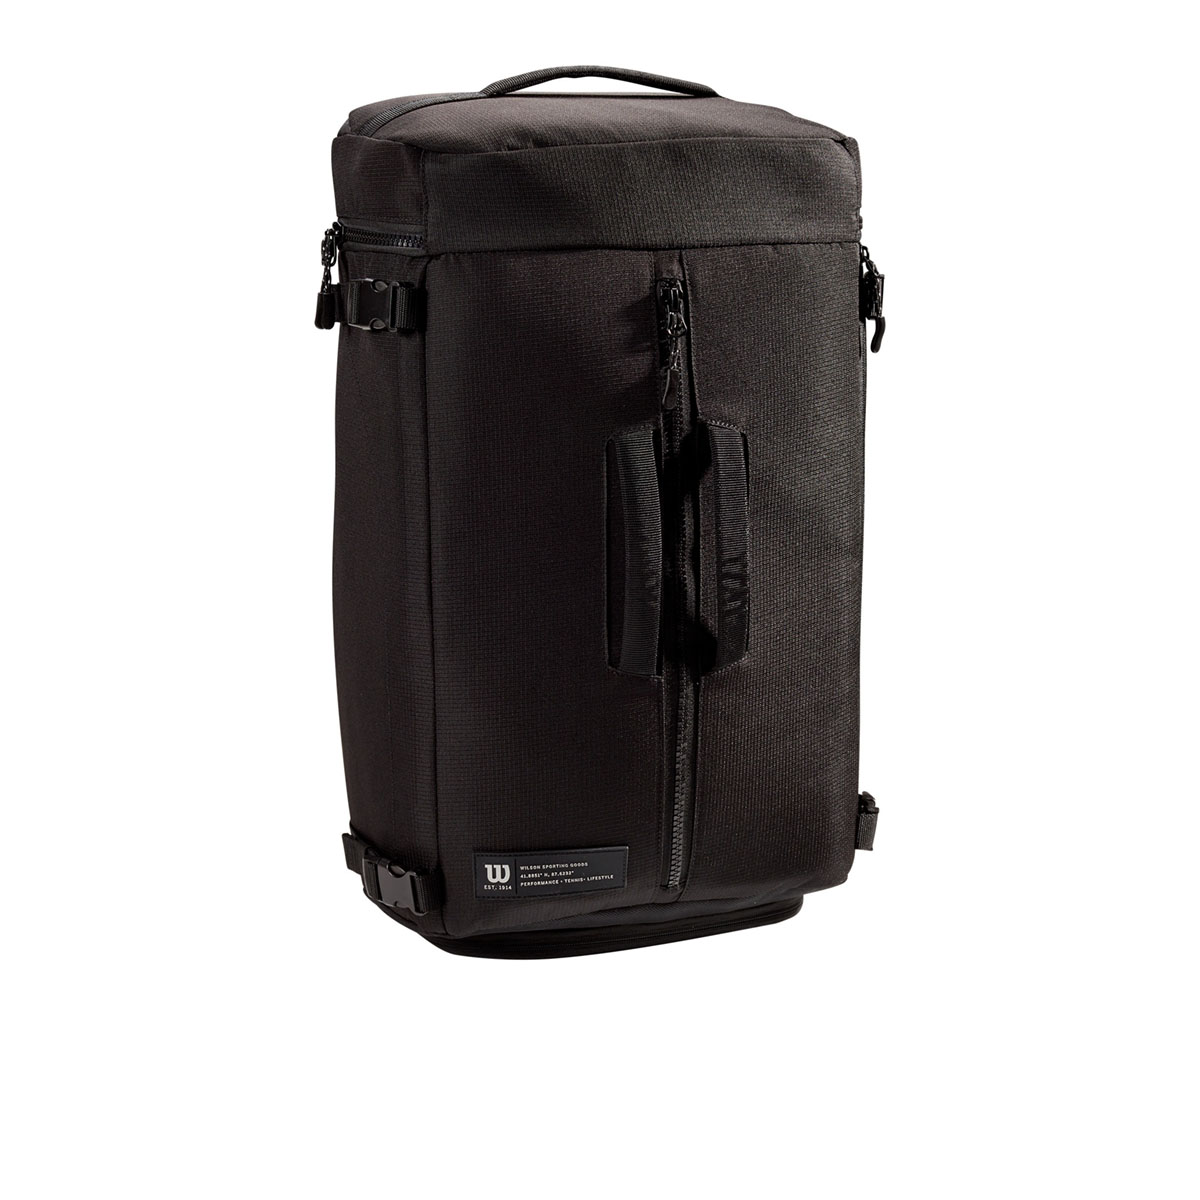 WR8012101_0_Work_Play_Duffle_Backpack_BL.png.cq5dam.web.2000.2000